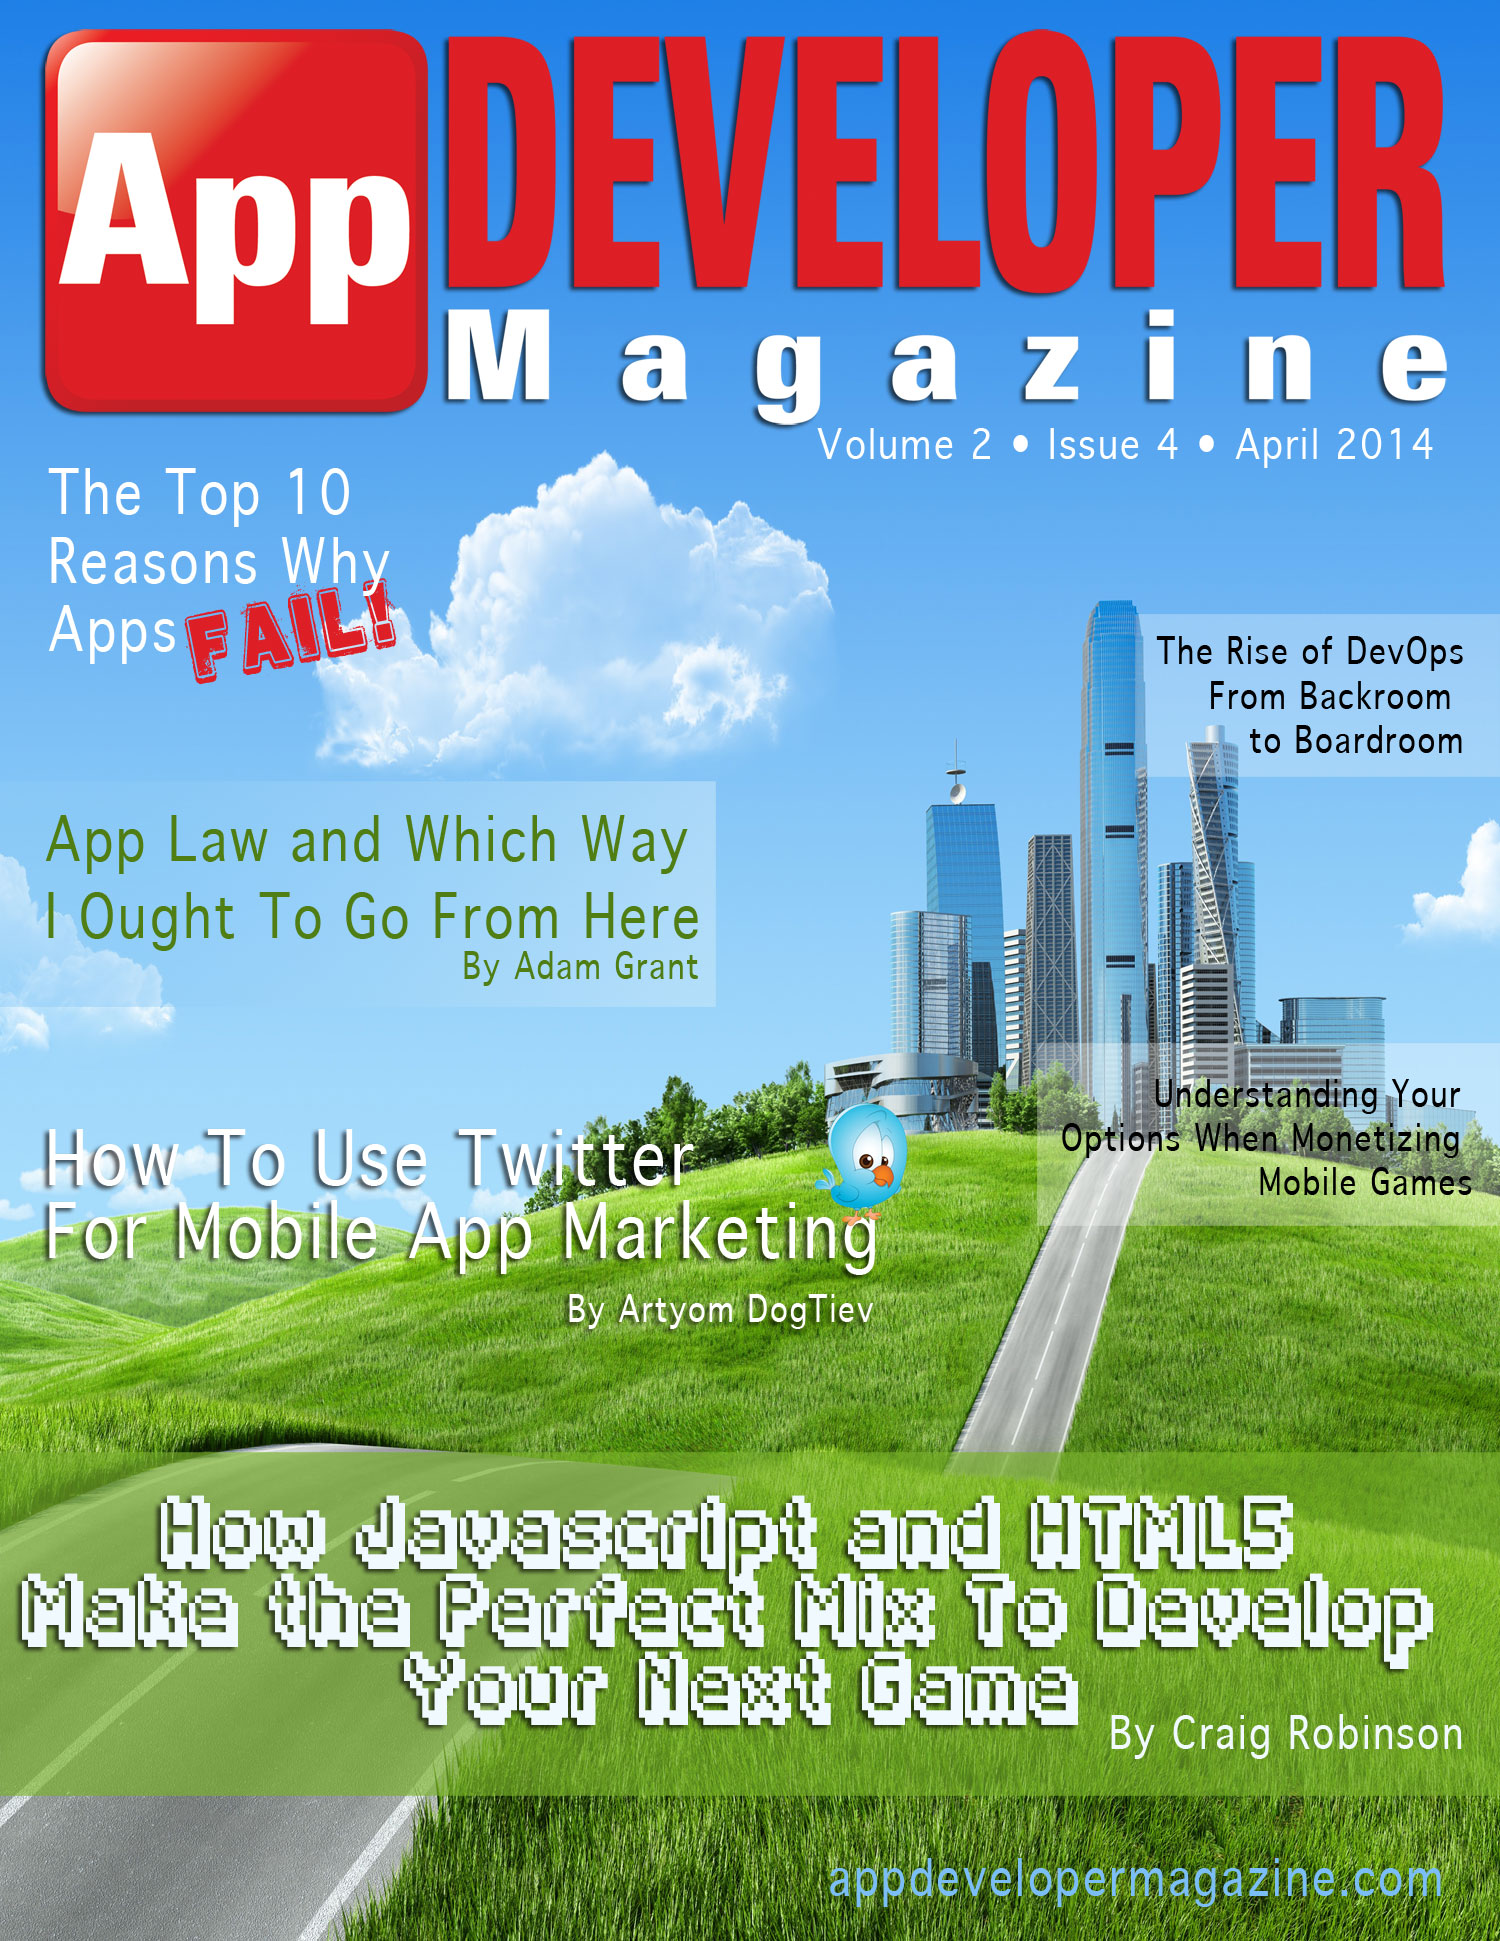 Read App Developer Magazine April 2014 issue